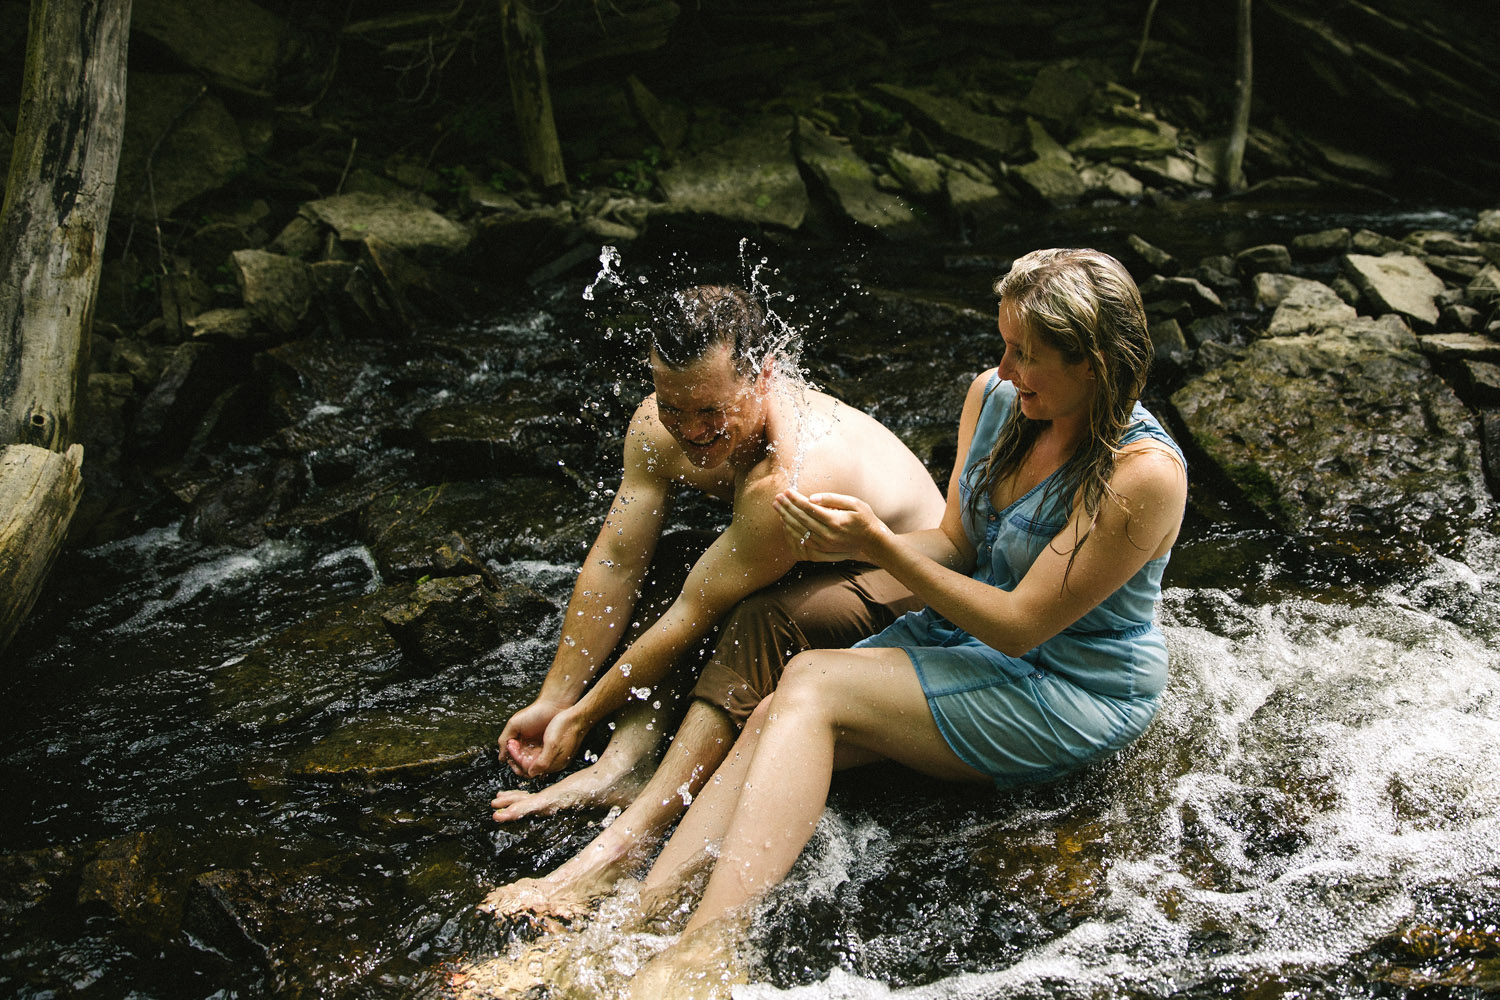 228-WaterfallEngagementSession.jpg